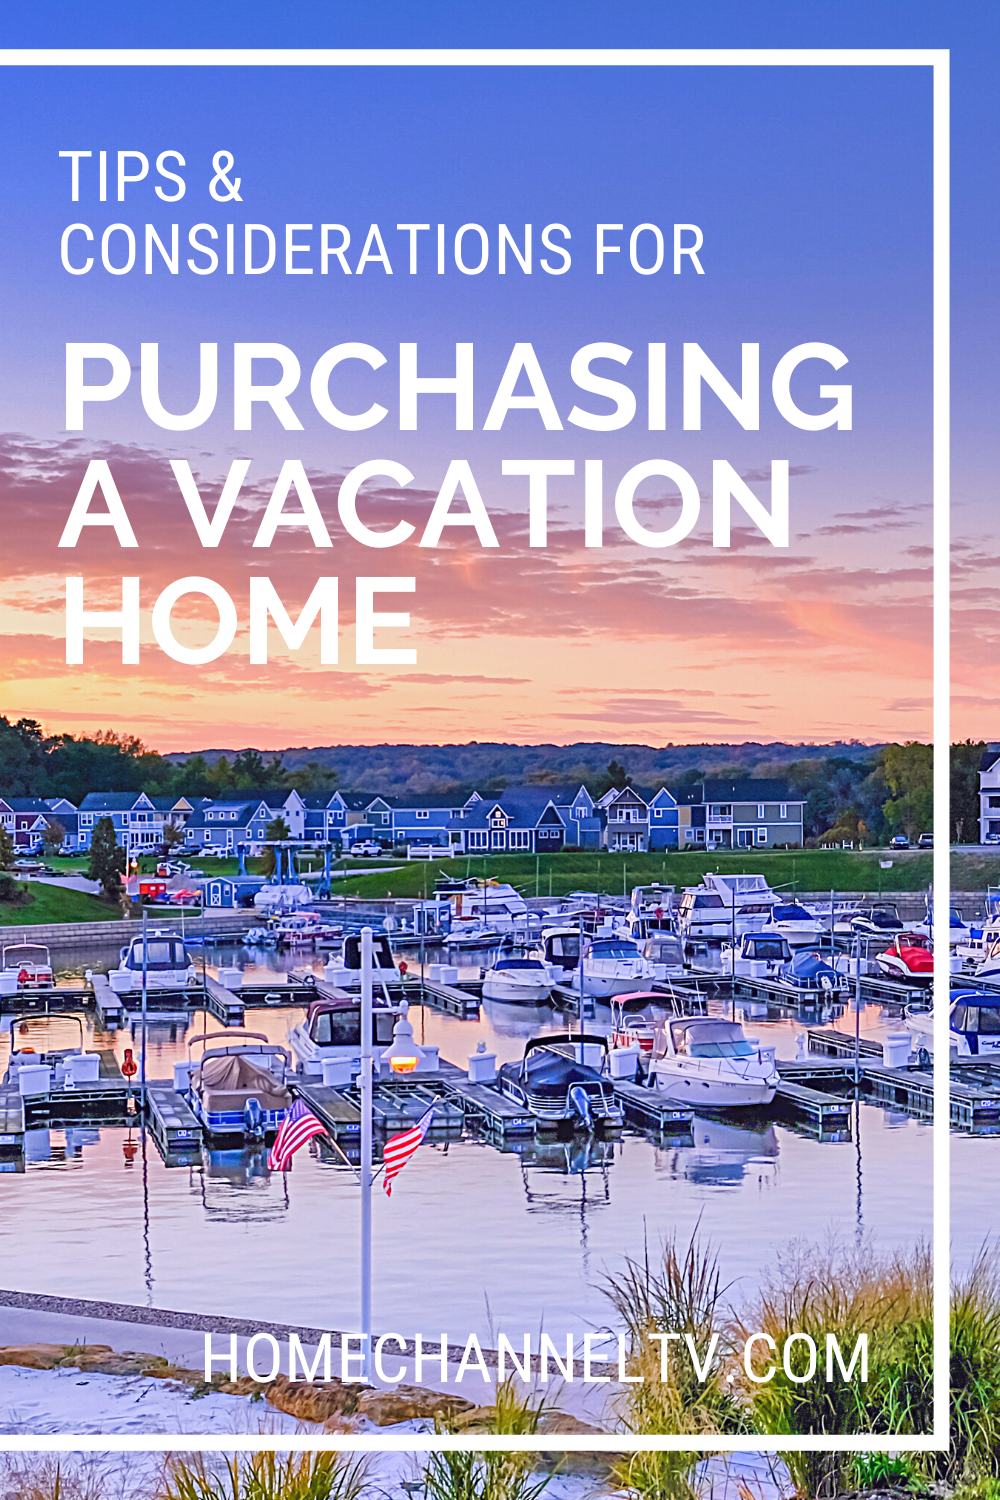 Tips for Purchasing a Vacation Home Marina at Sunset